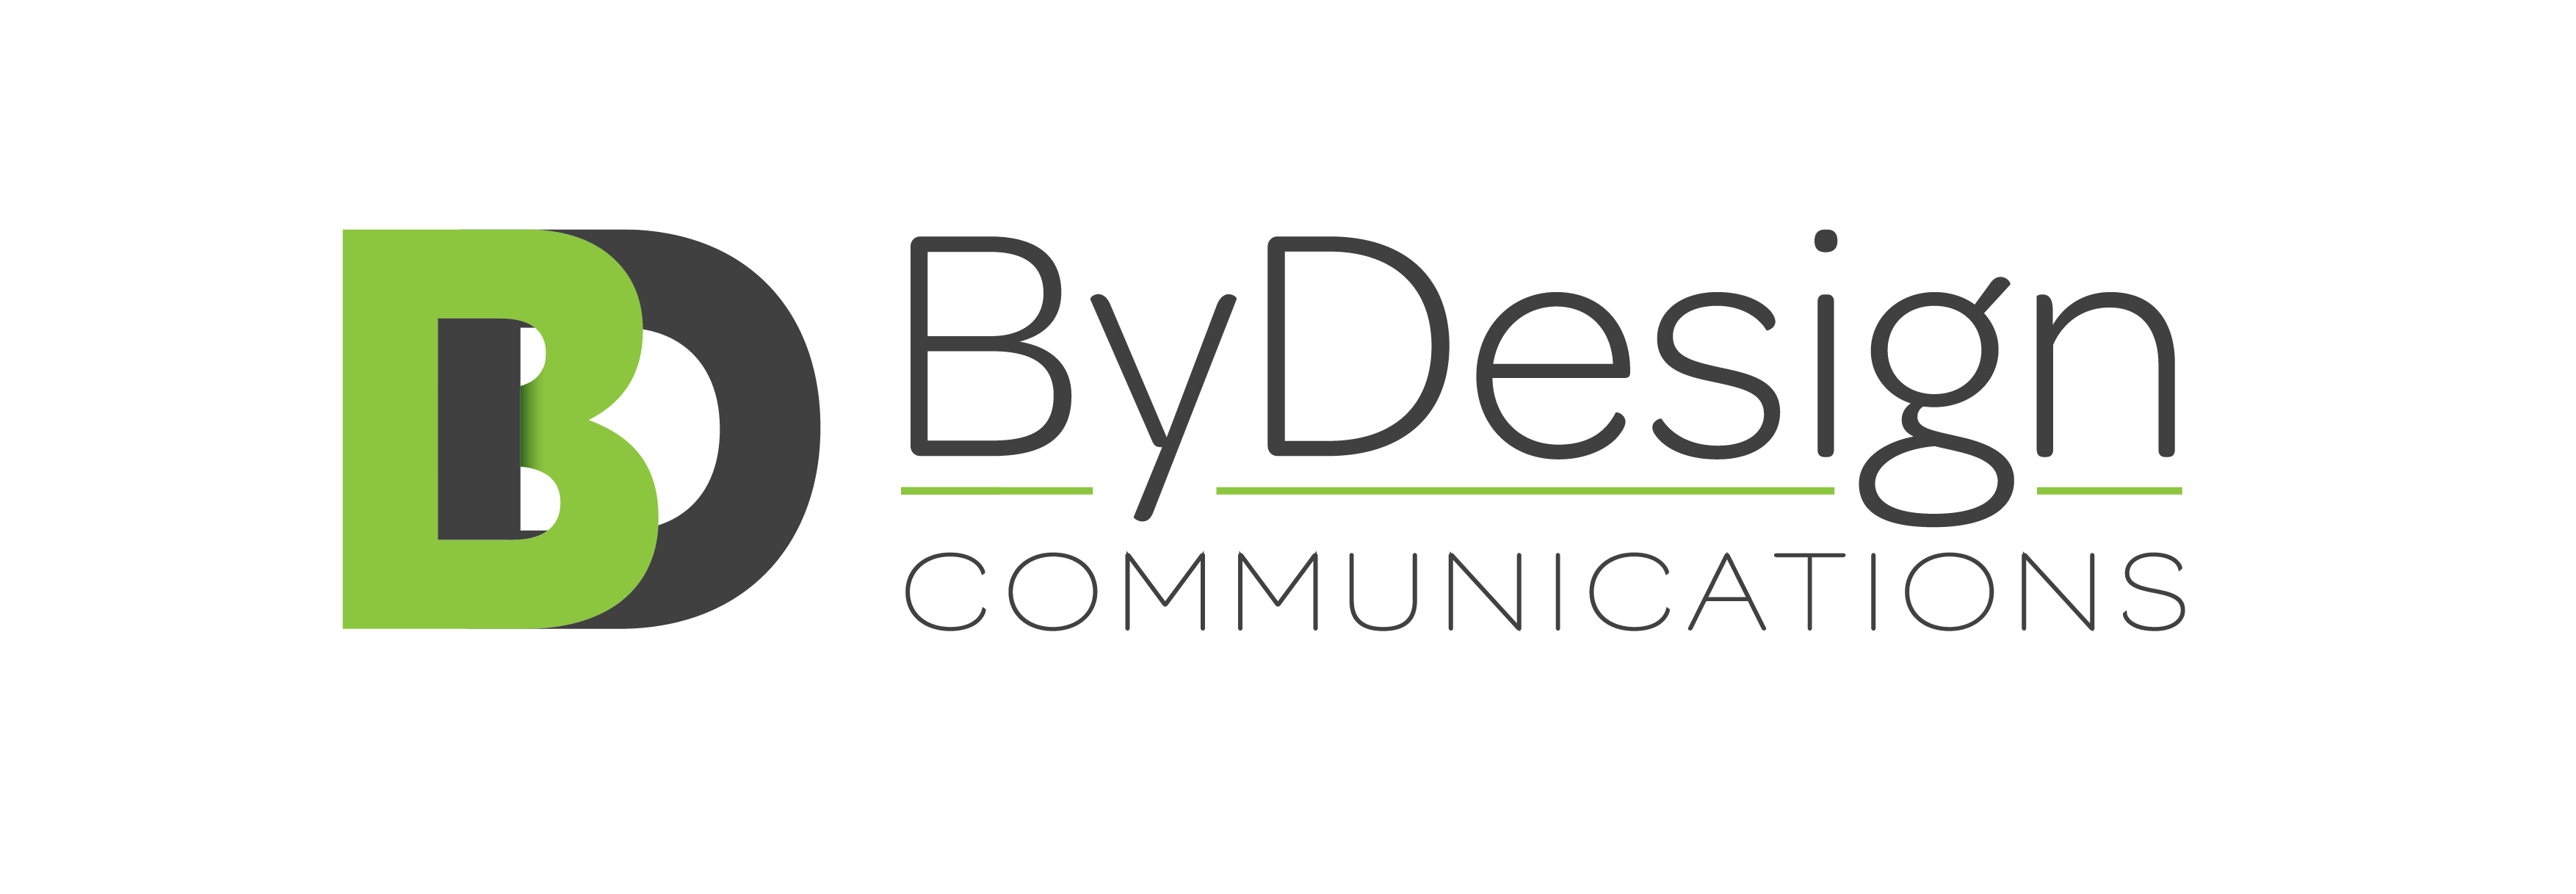 ByDesign Communications